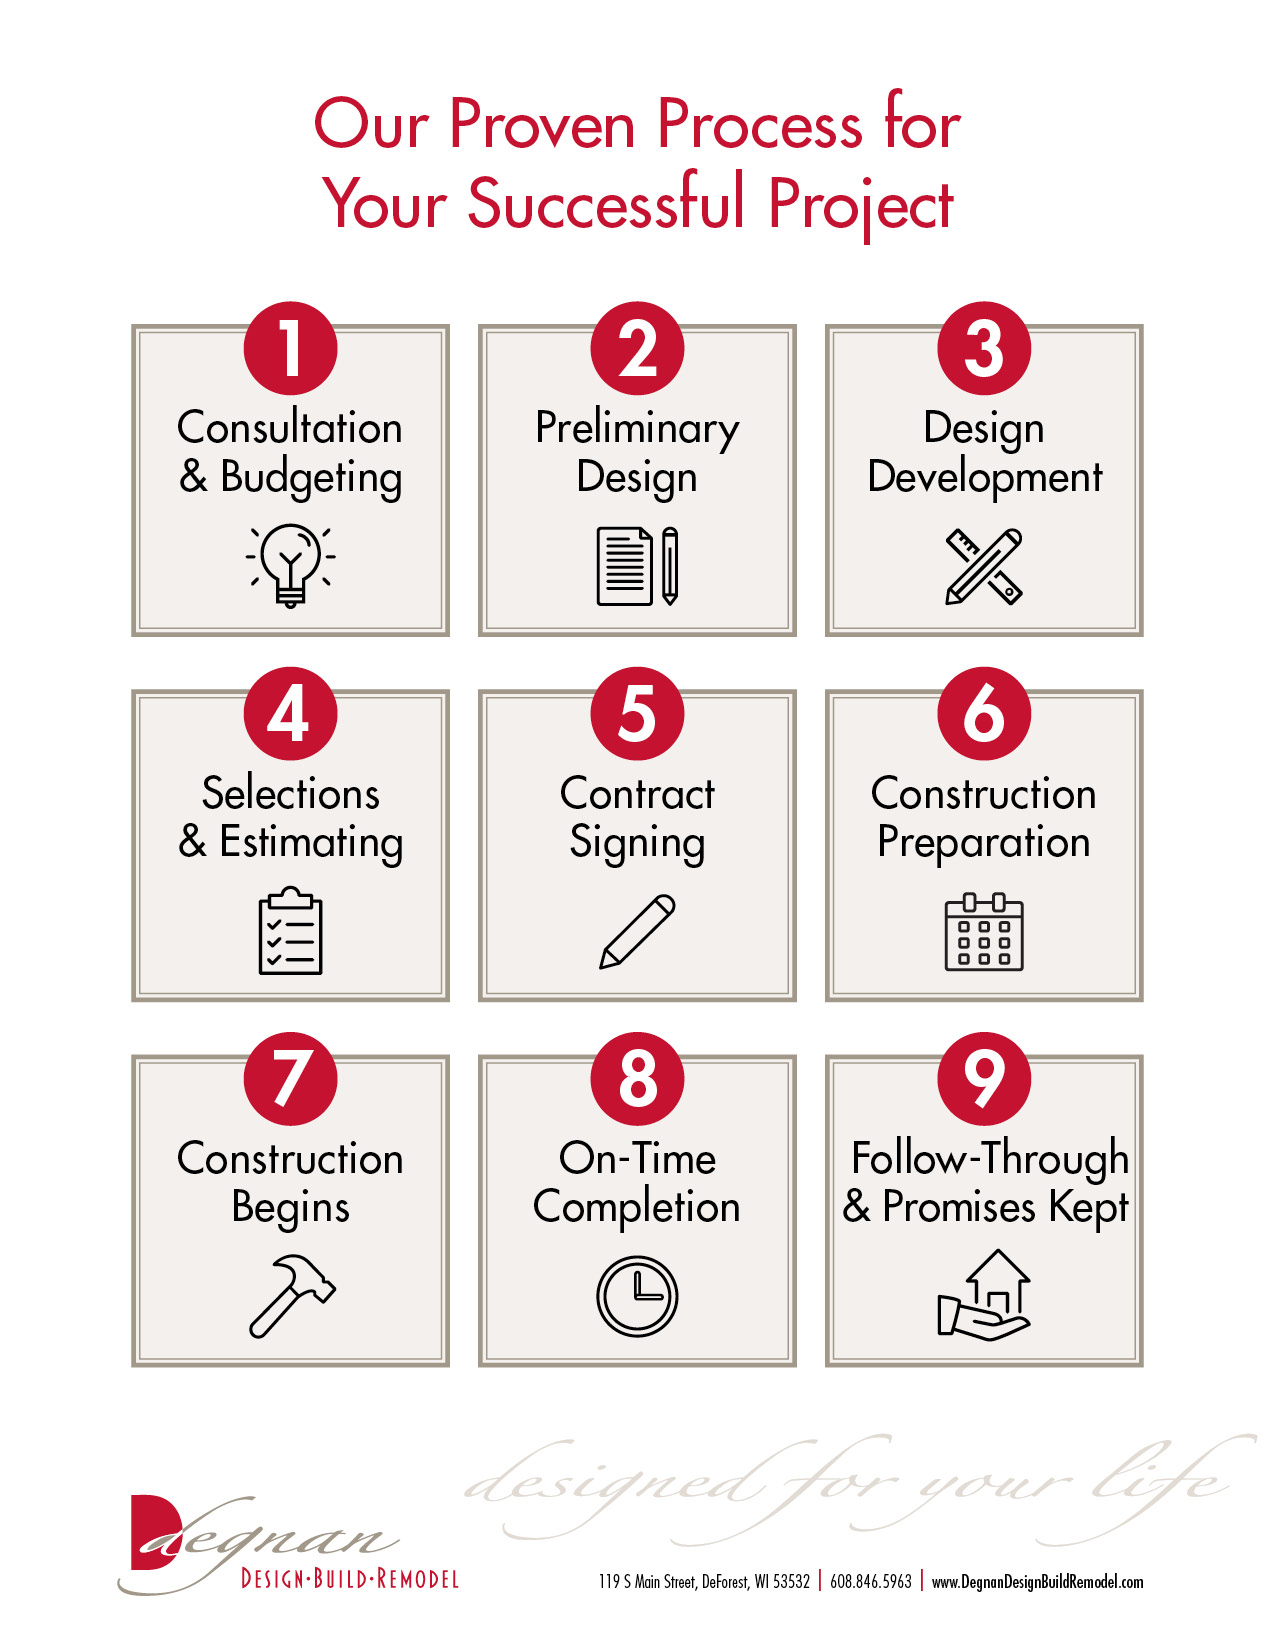 our process to help clients understand the design-build-remodel process